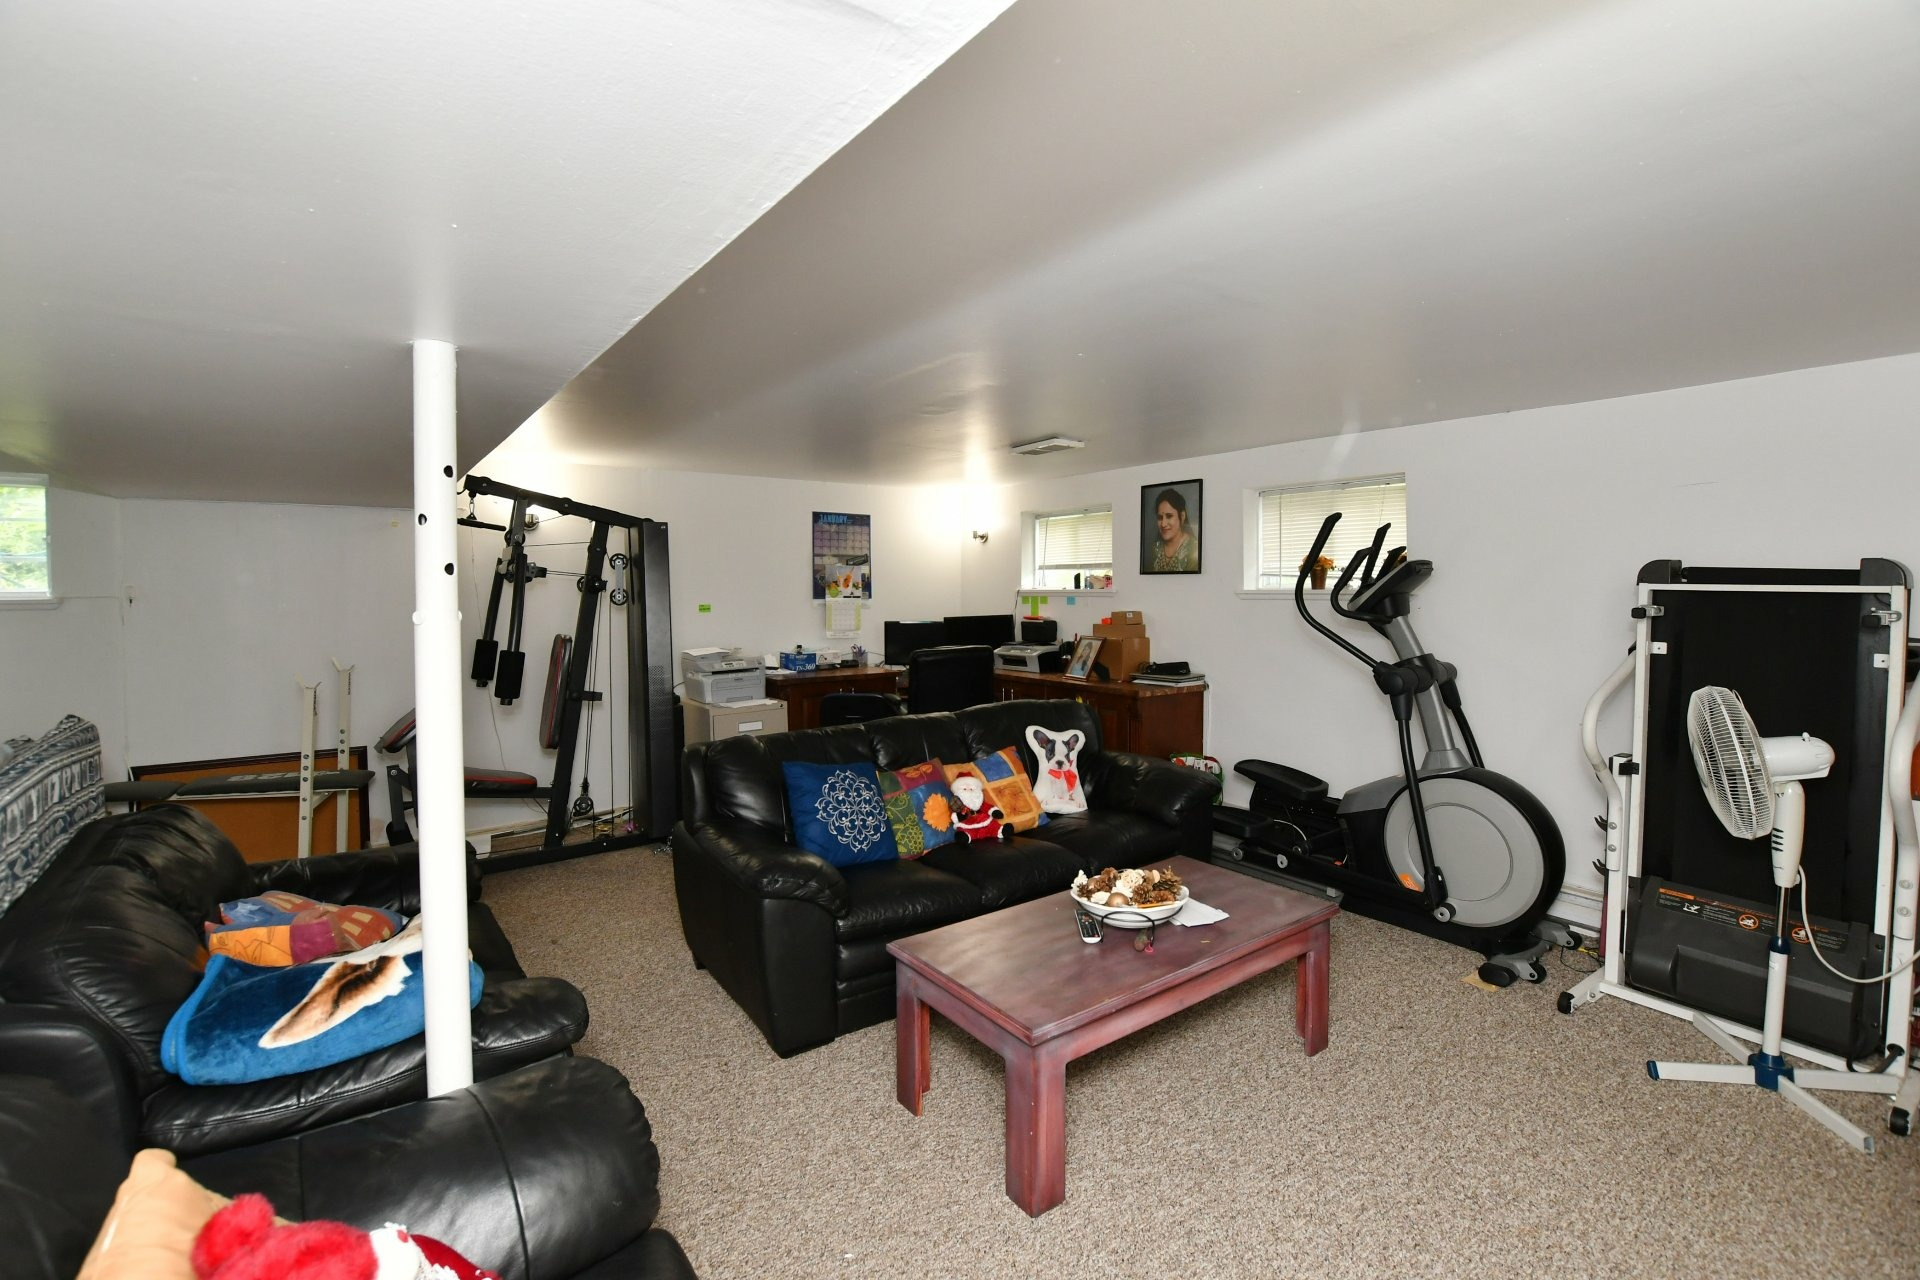 image 15 - House For sale Laval Chomedey  - 7 rooms